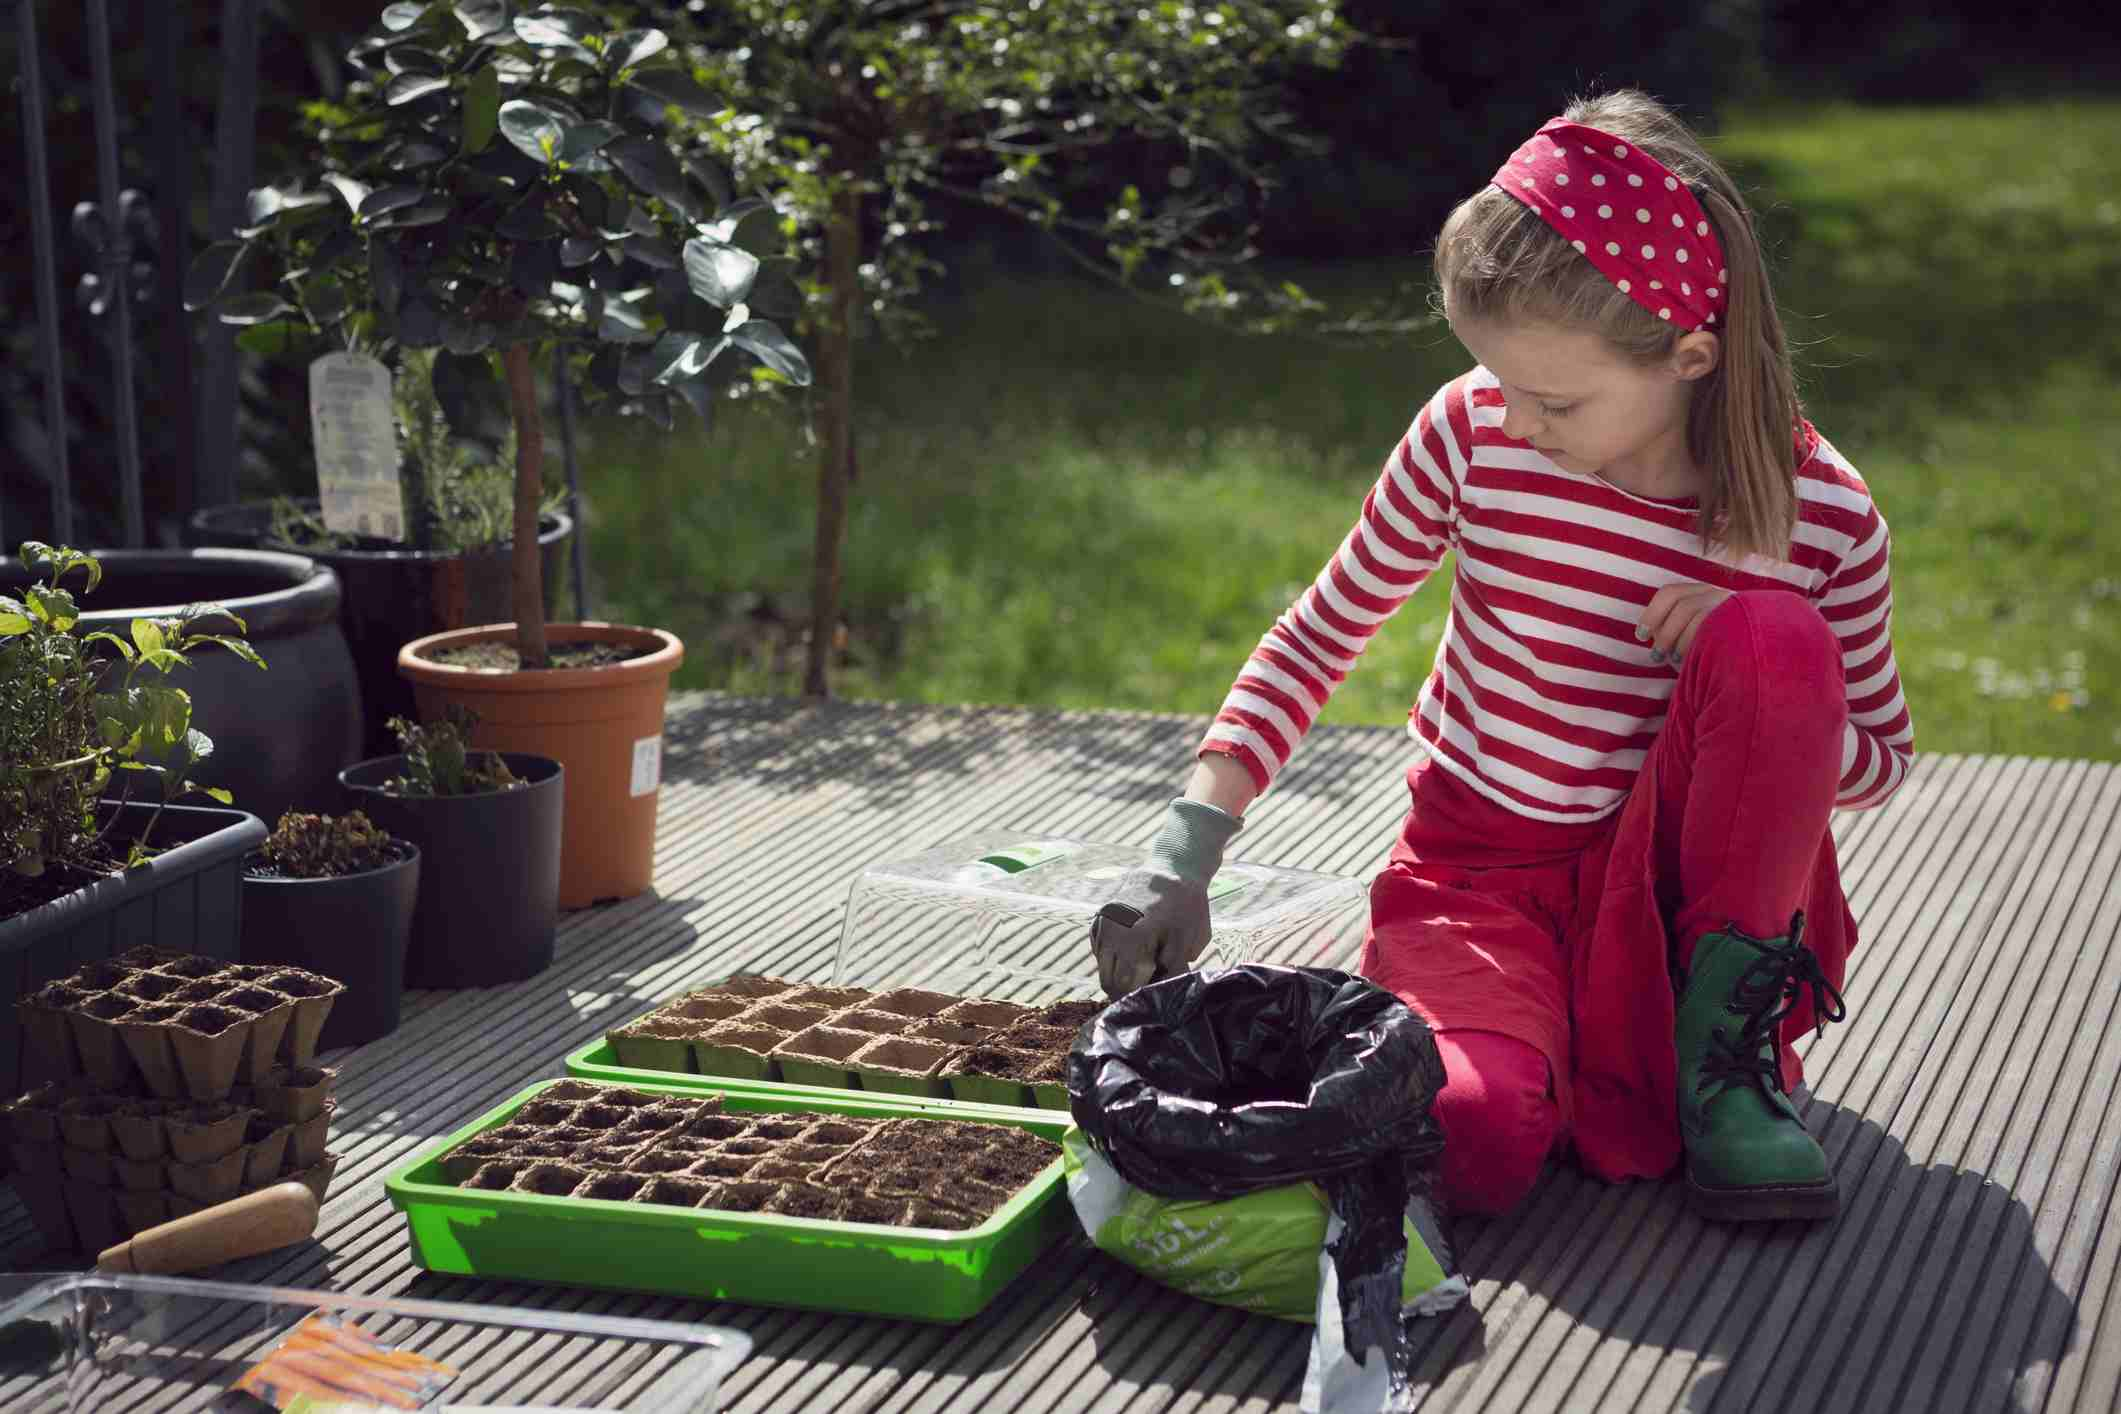 Girl planting seeds in biodegradable containers.